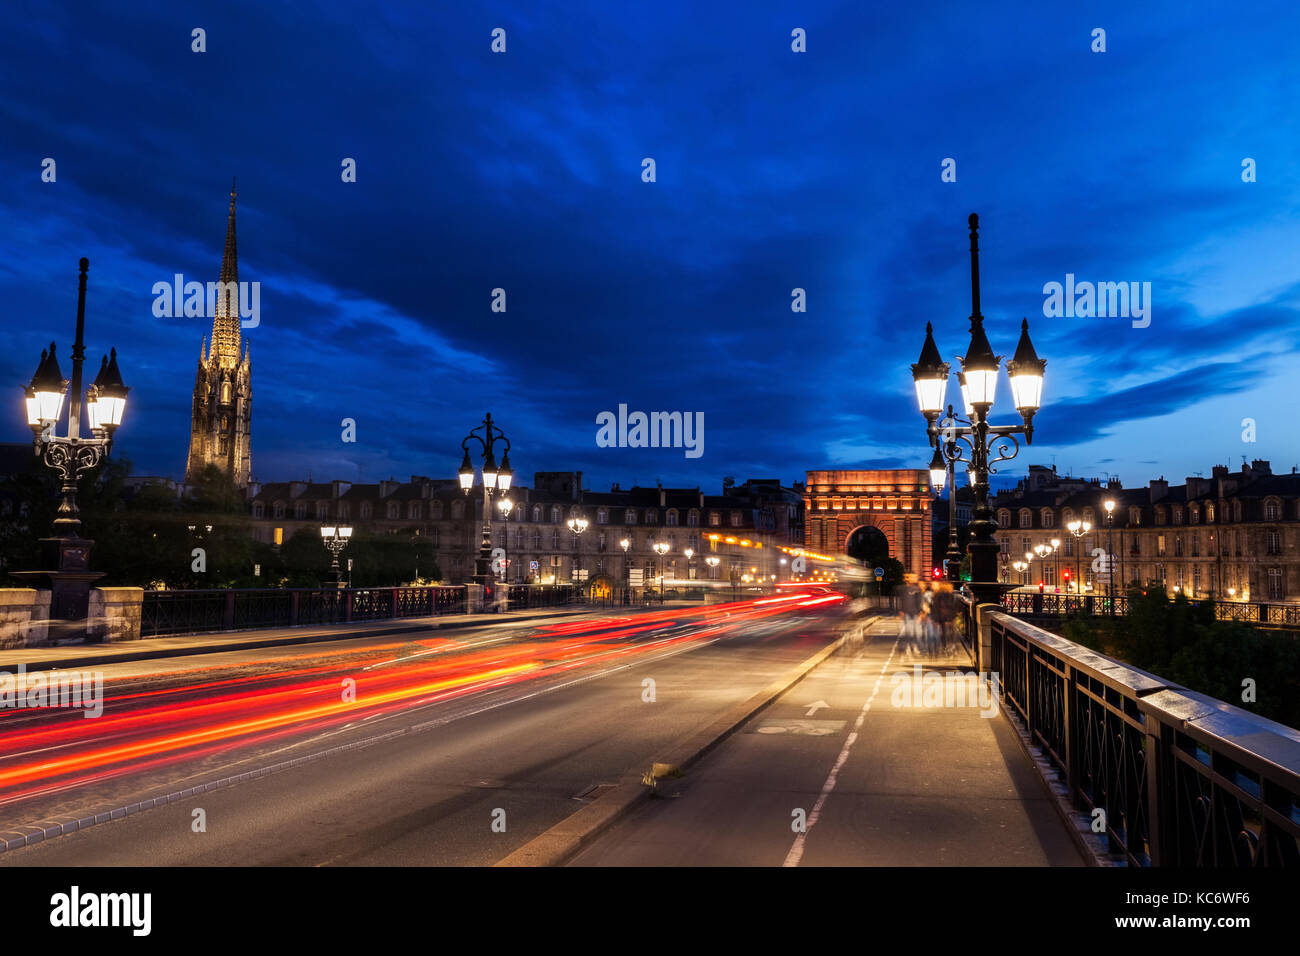 France, Nouvelle-Aquitaine, Bordeaux, Cailhau Gate, Incidental people and cars in long exposure - Stock Image